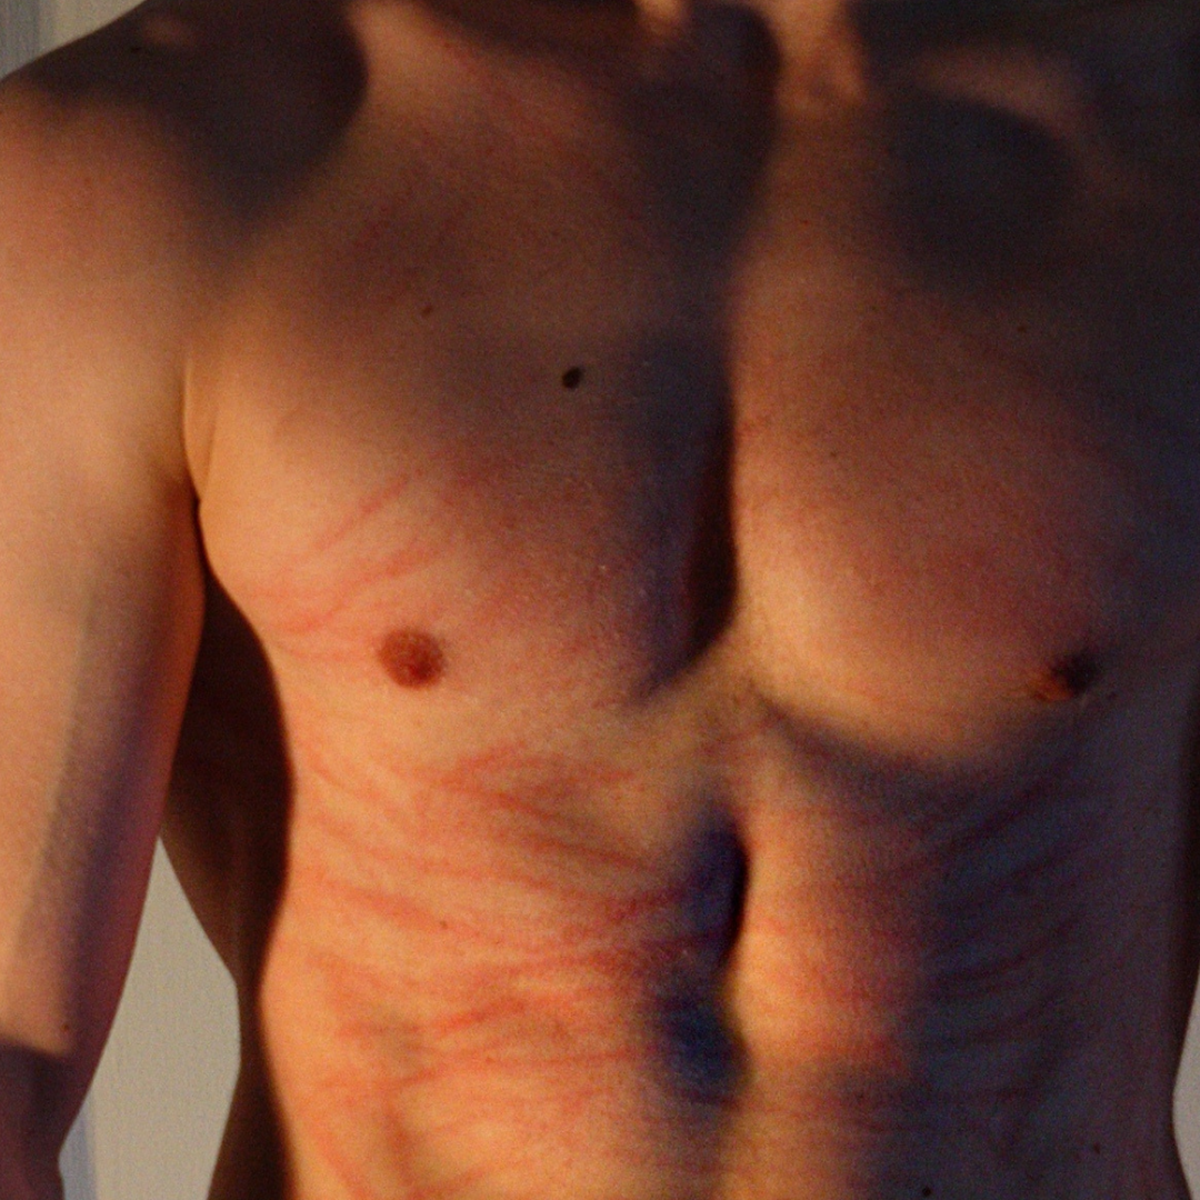 Scratches on the stomach and chest.